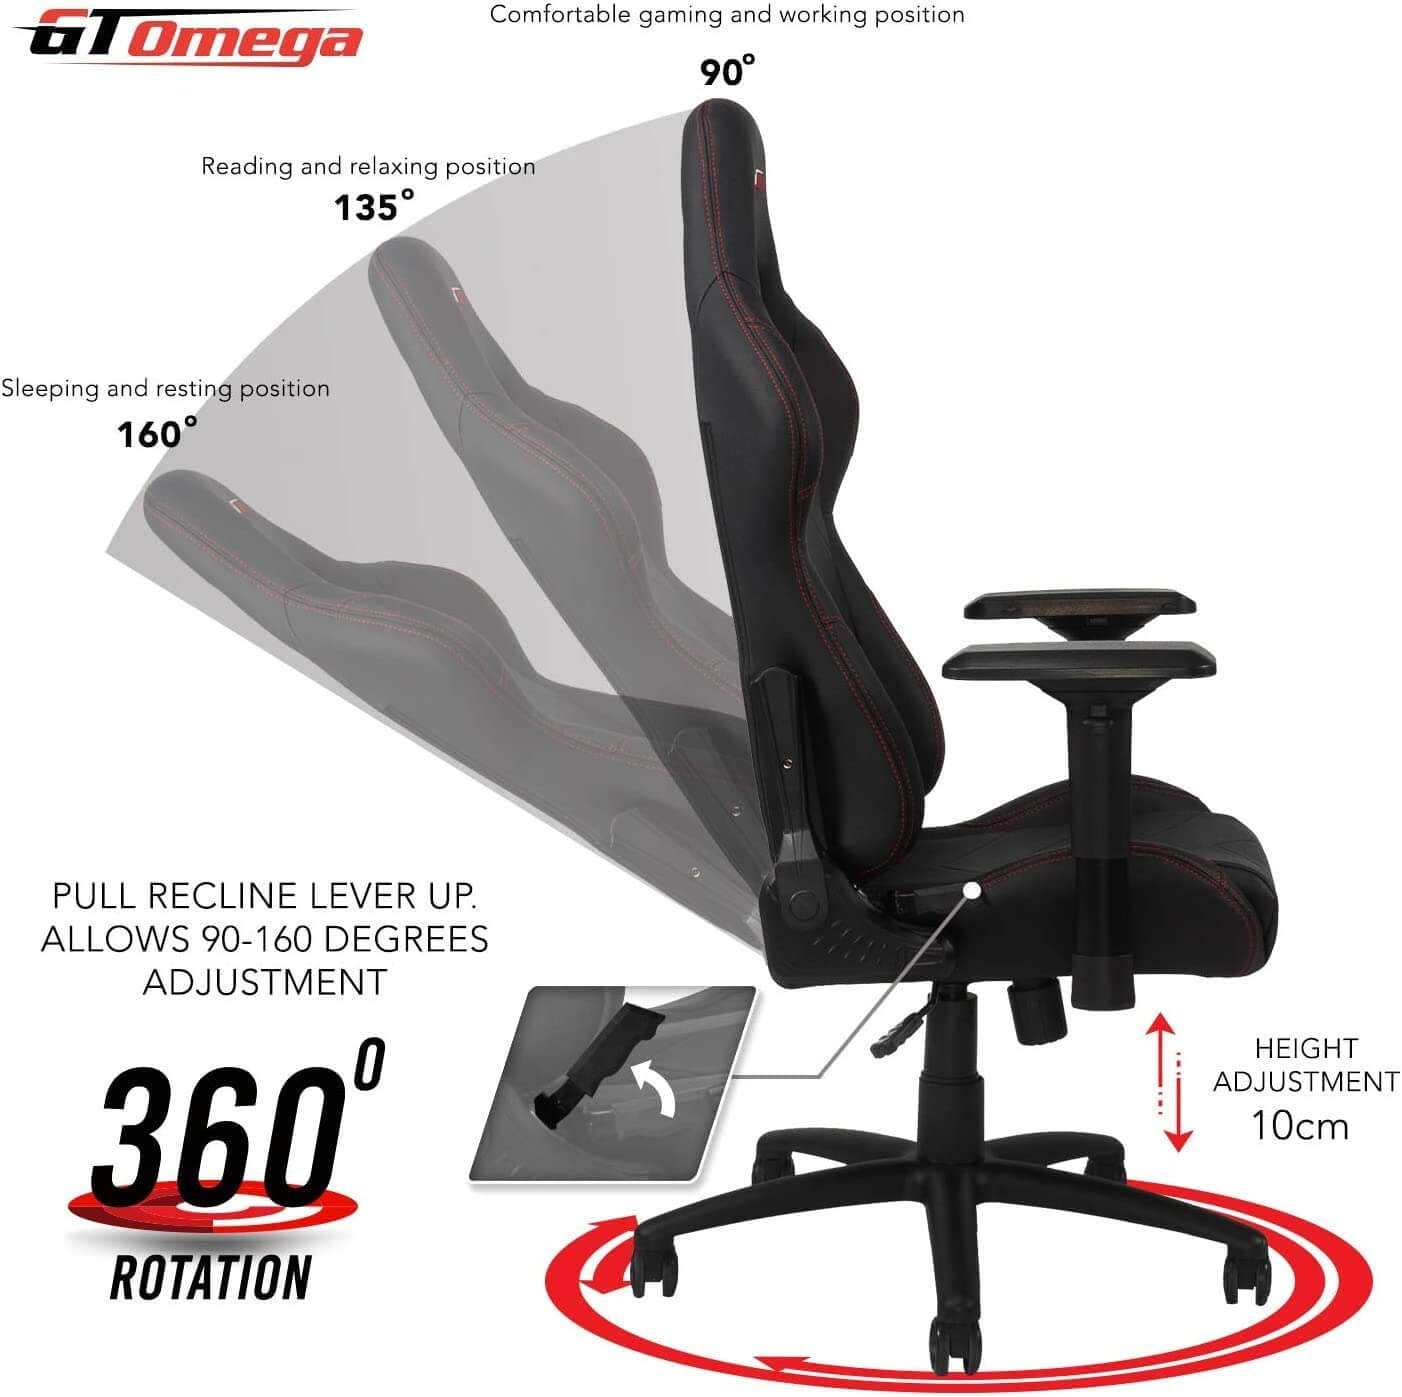 GT OMEGA PRO budget gaming chair with 360 rotation and 160 degree recline